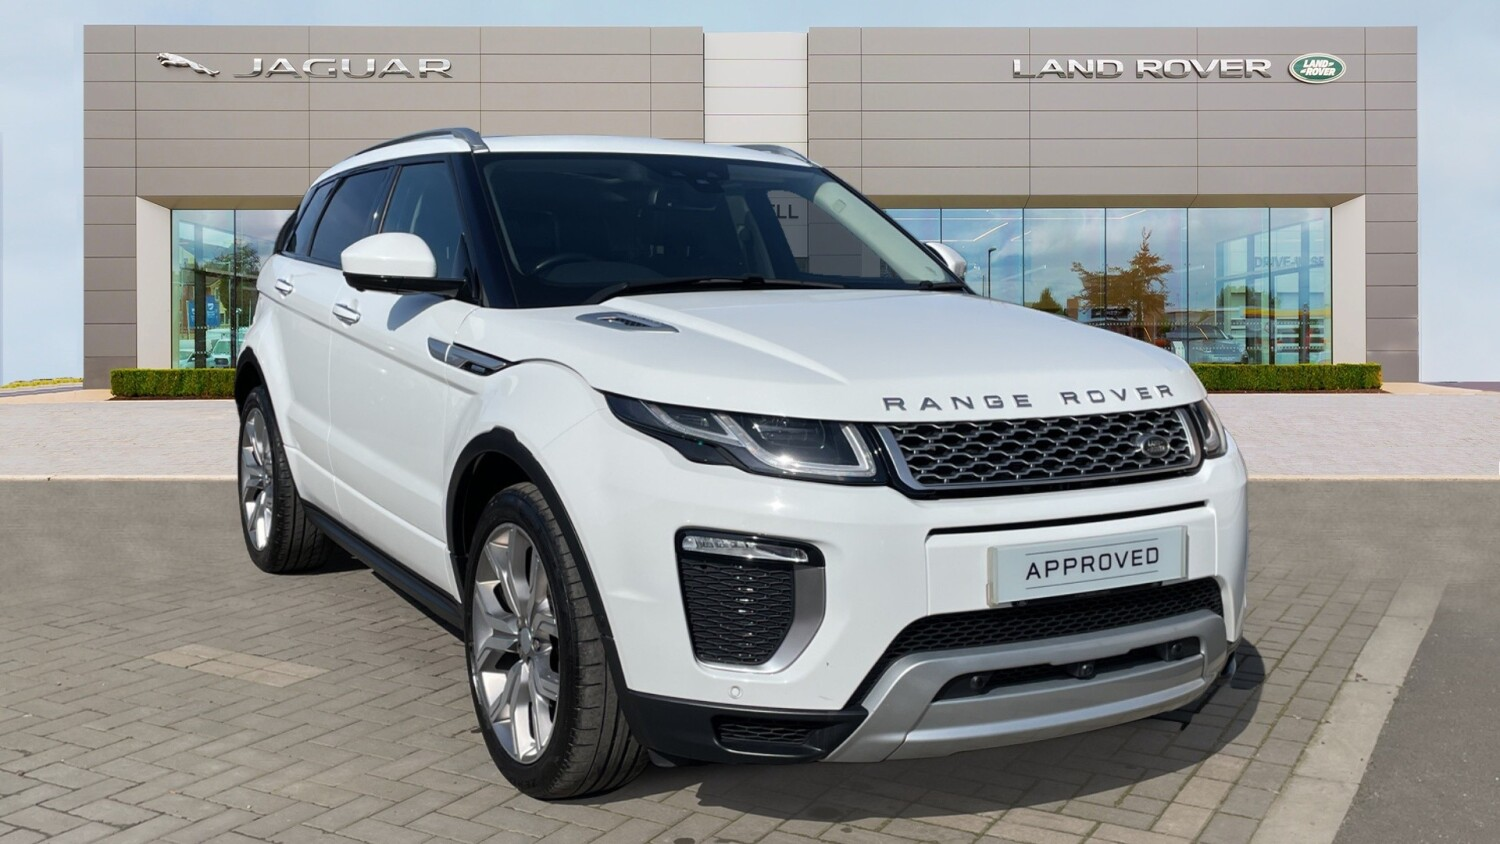 used land rover range rover evoque 2 0 td4 autobiography 5dr auto diesel hatchback for sale. Black Bedroom Furniture Sets. Home Design Ideas